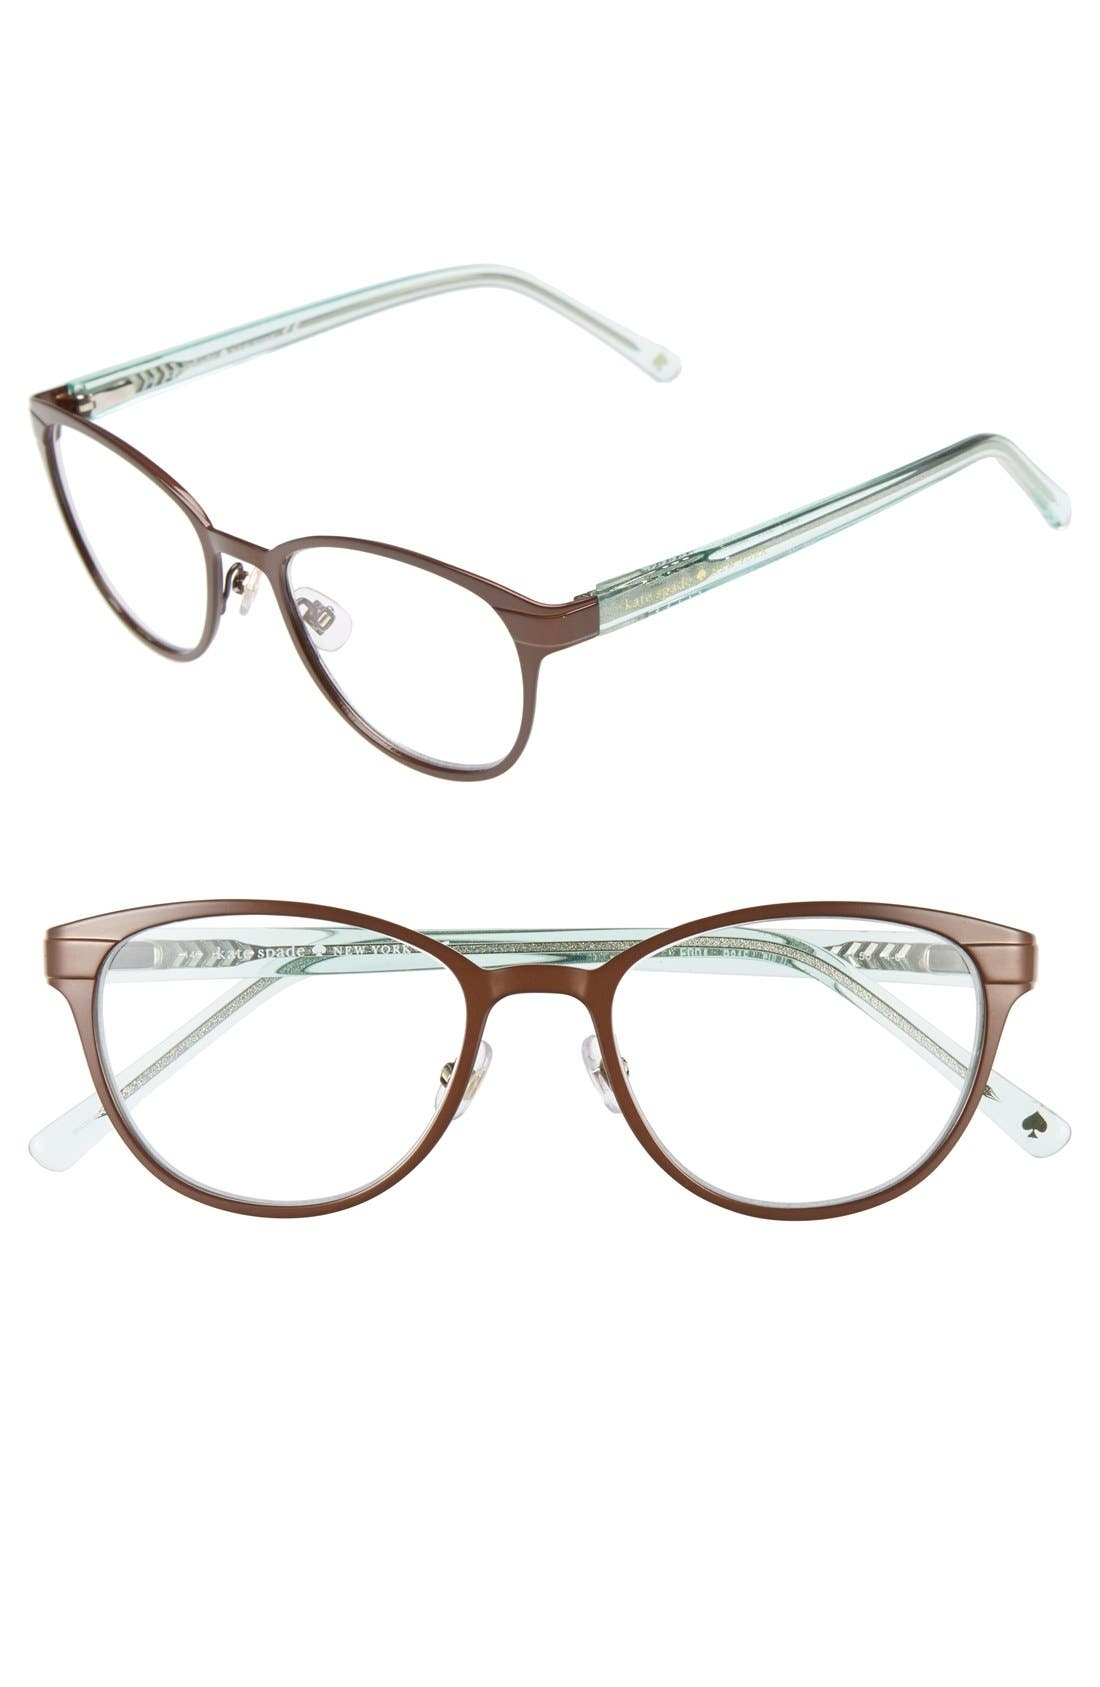 Main Image - kate spade new york 'ebba' 50mm reading glasses